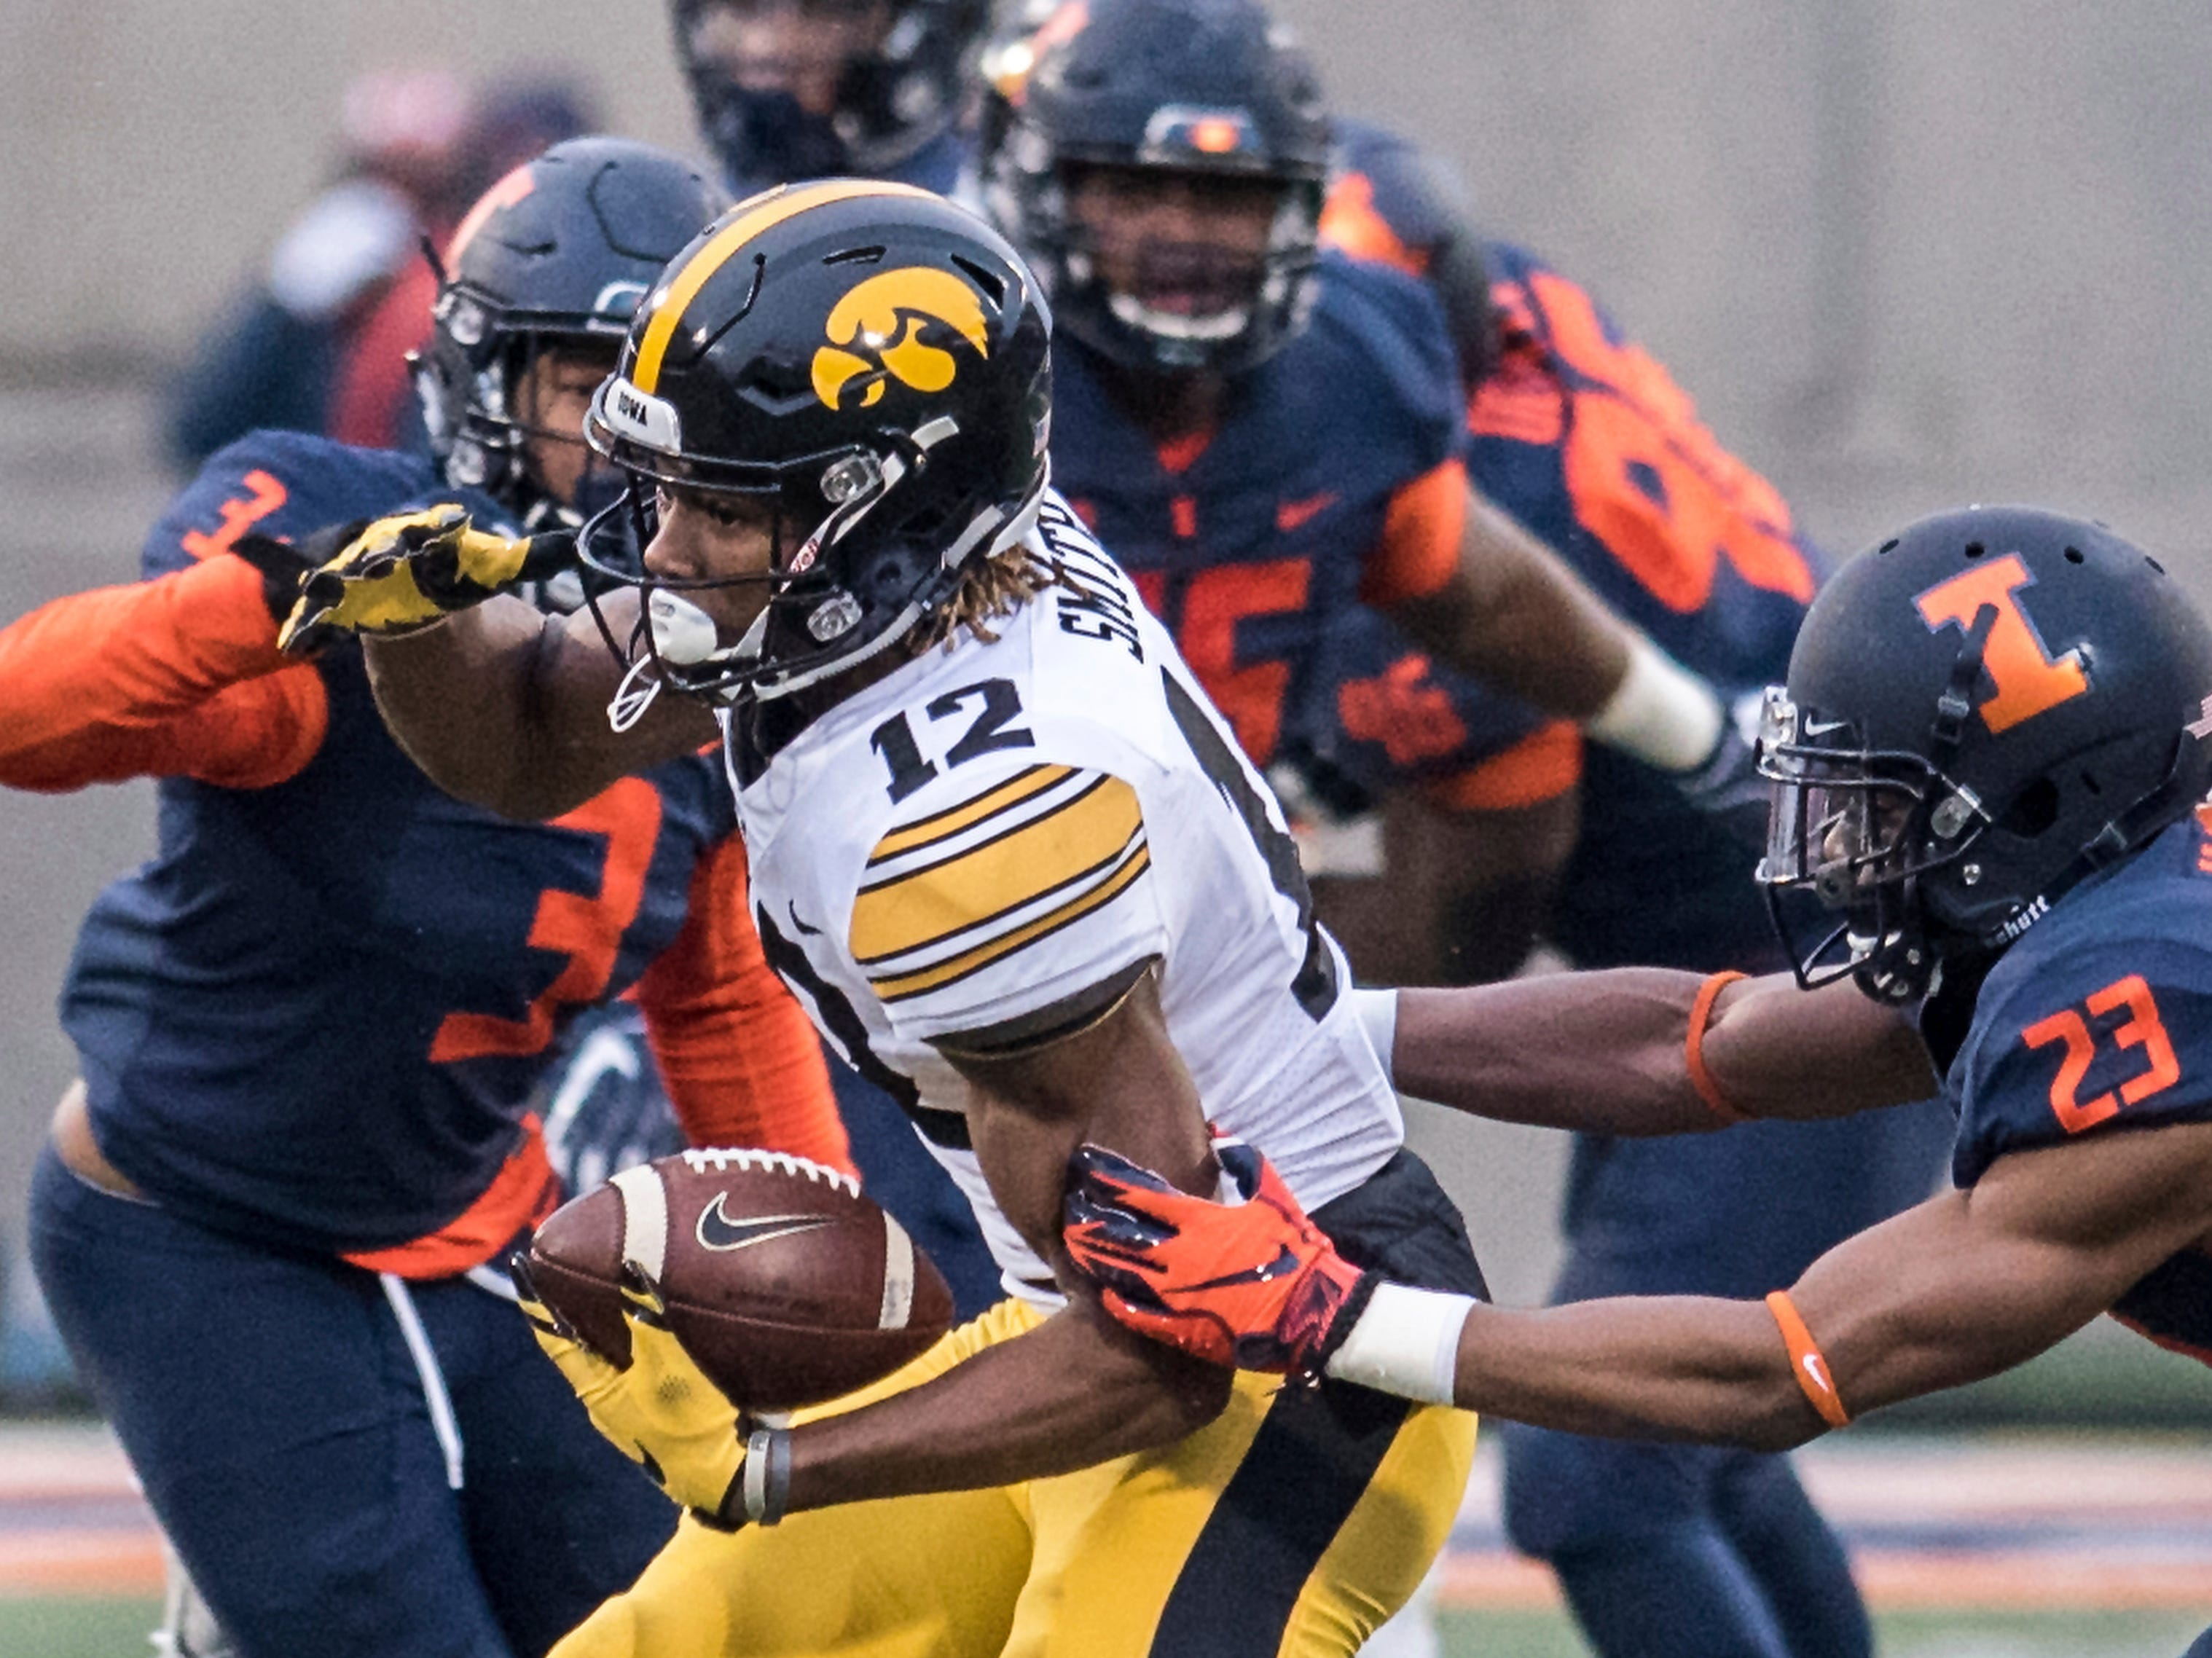 Iowa's Brandon Smith runs with the ball in the first half of a NCAA college football game against Illinois, Saturday, Nov. 17, 2018, in Champaign, Ill.